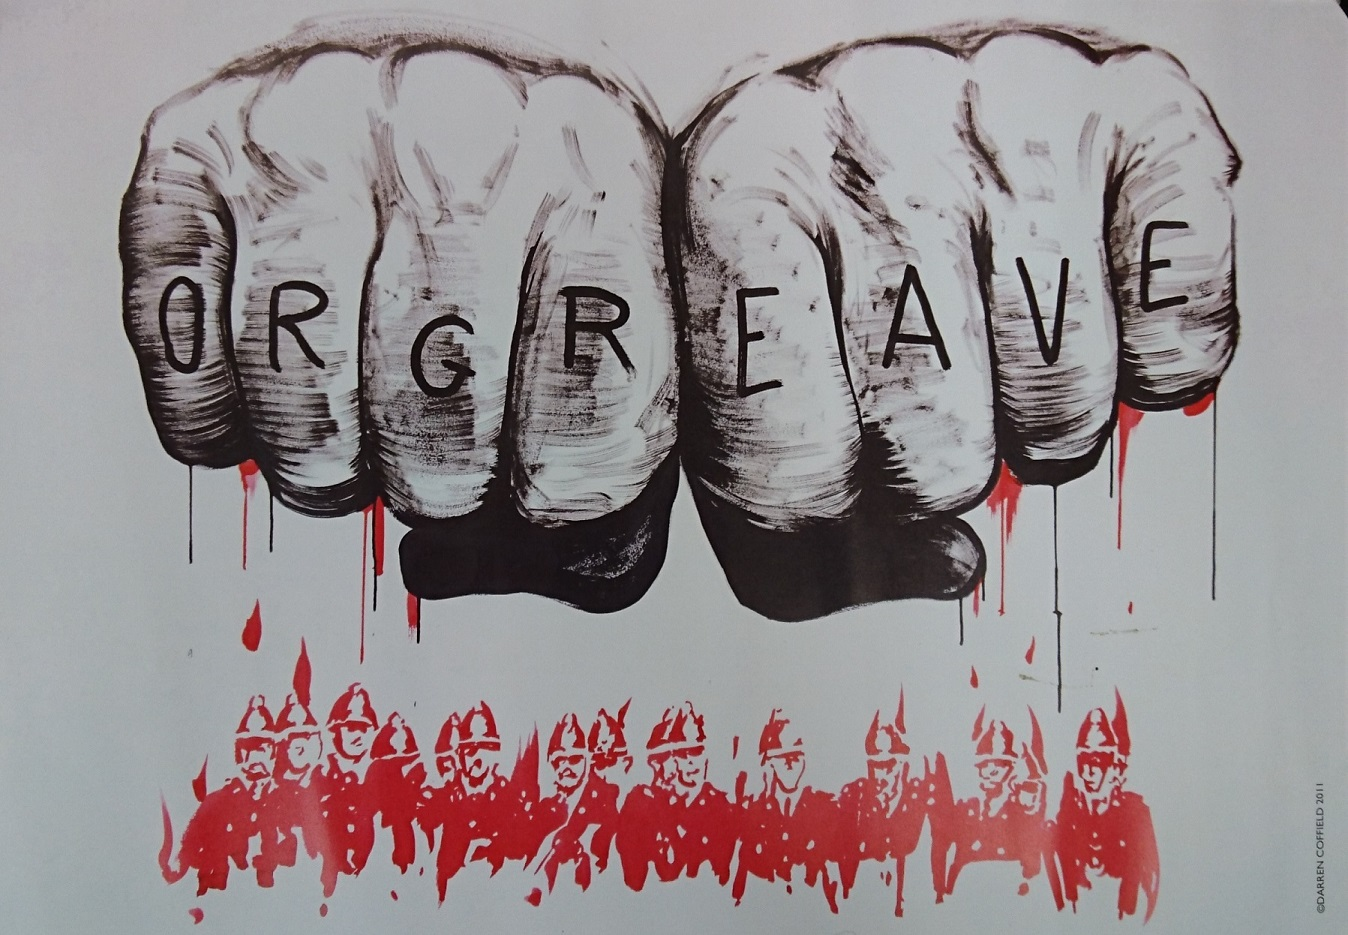 Orgreave Print 2